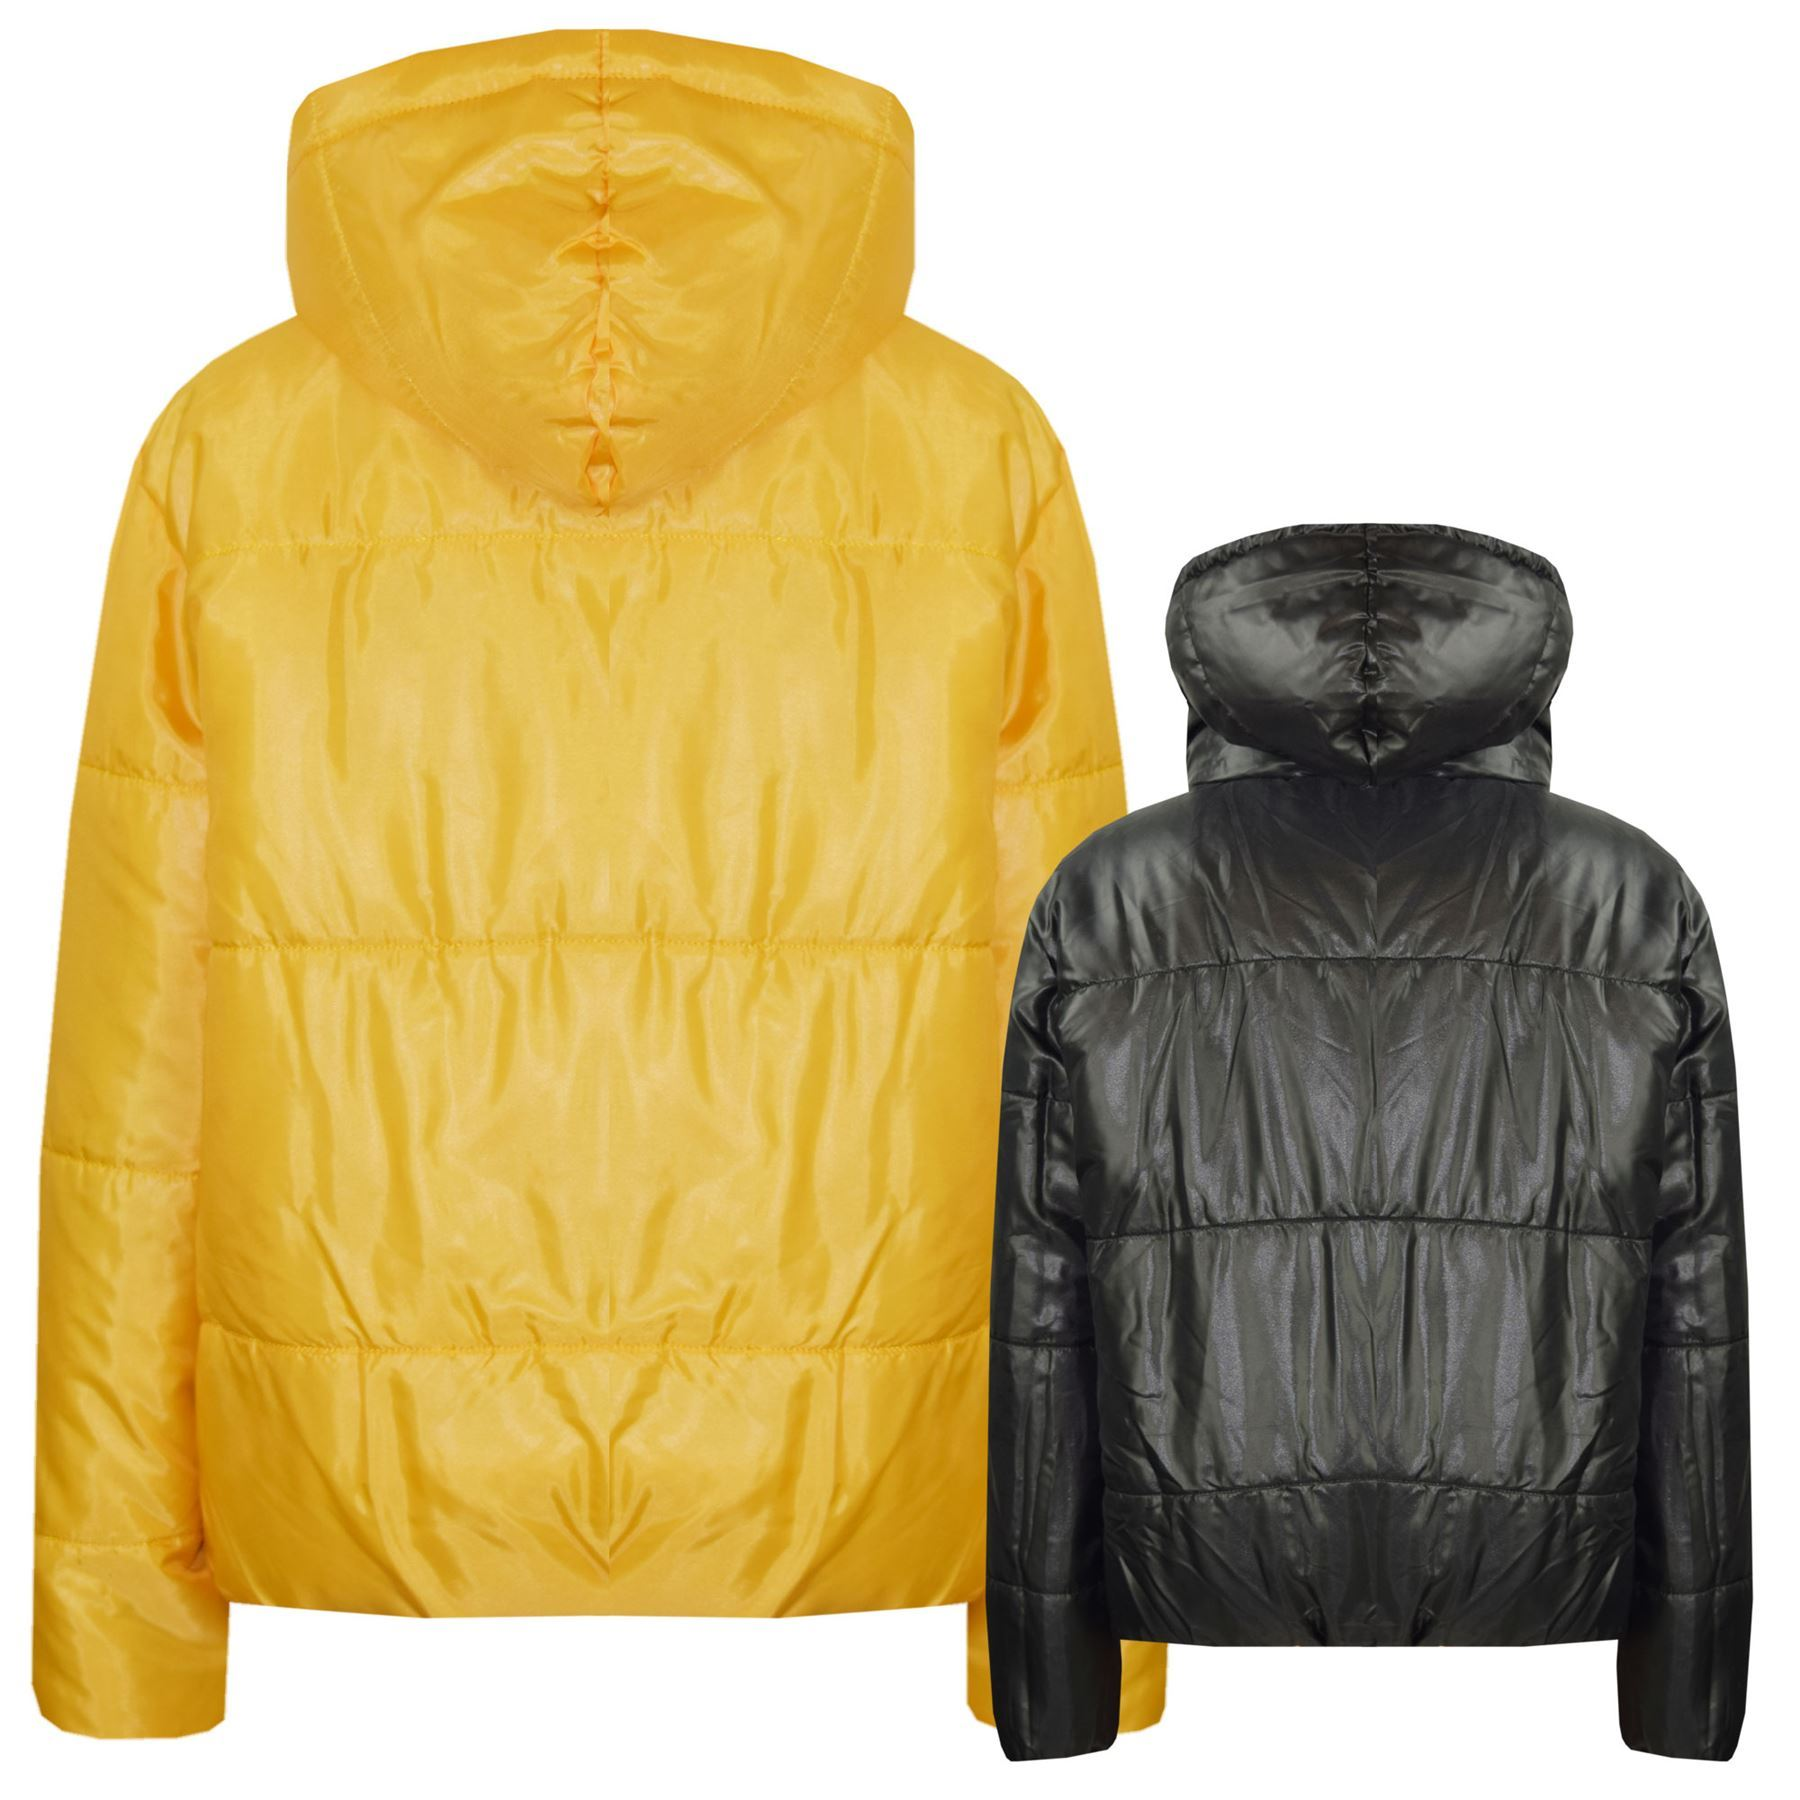 8a4c18ff9c7 Girls Jackets Kids Mustard Reversible Cropped Hooded Padded Puffer ...